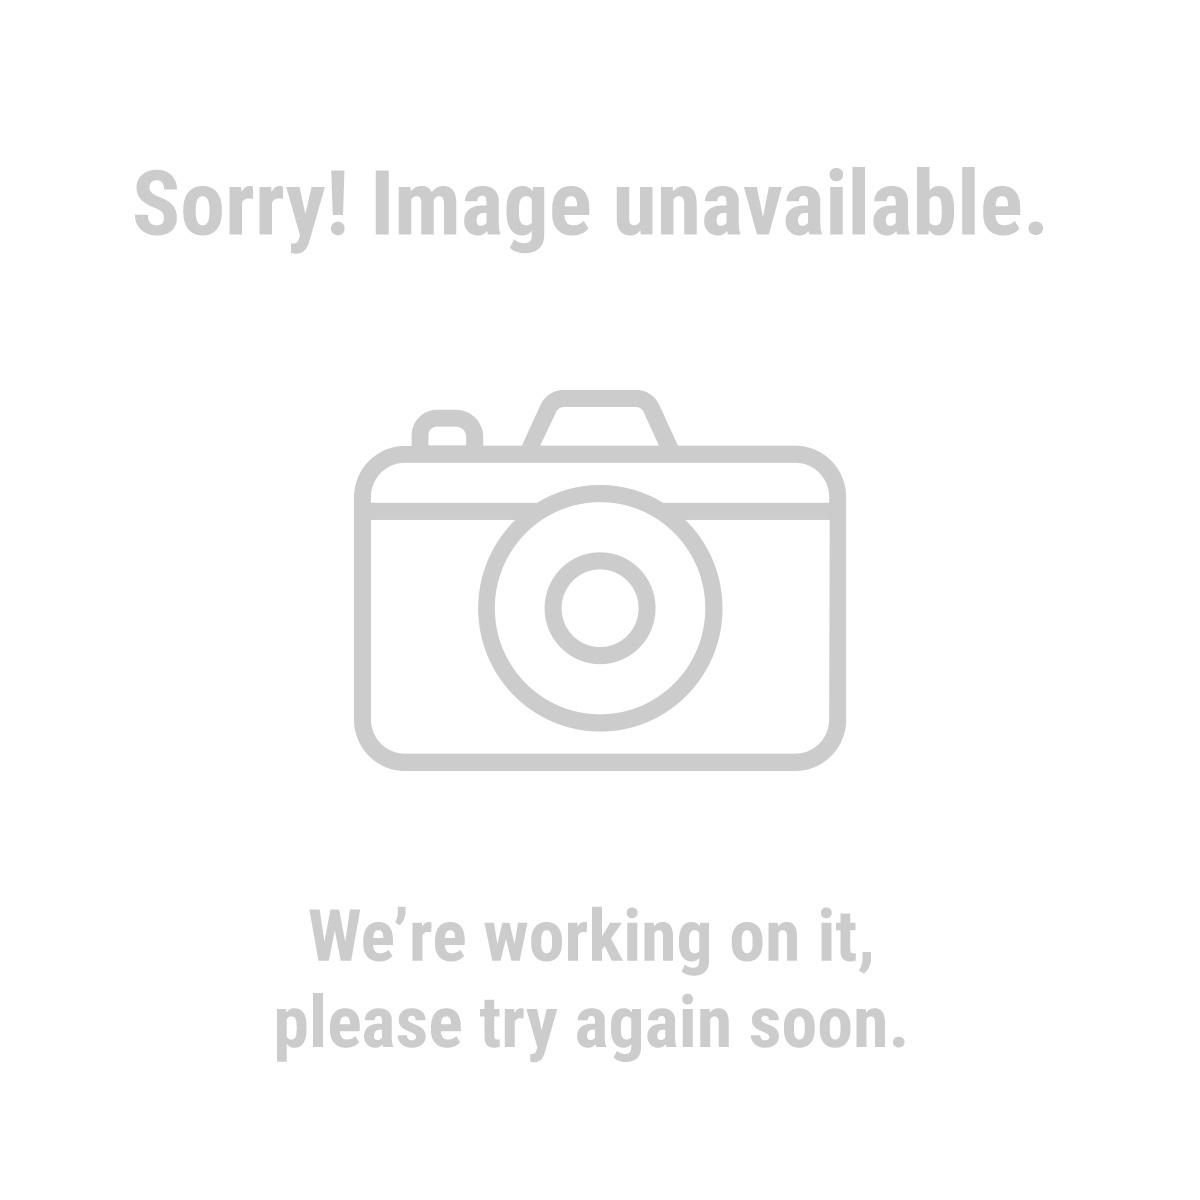 Western Safety Gloves 97443 Mechanic's Gloves with Spandex, X-Large